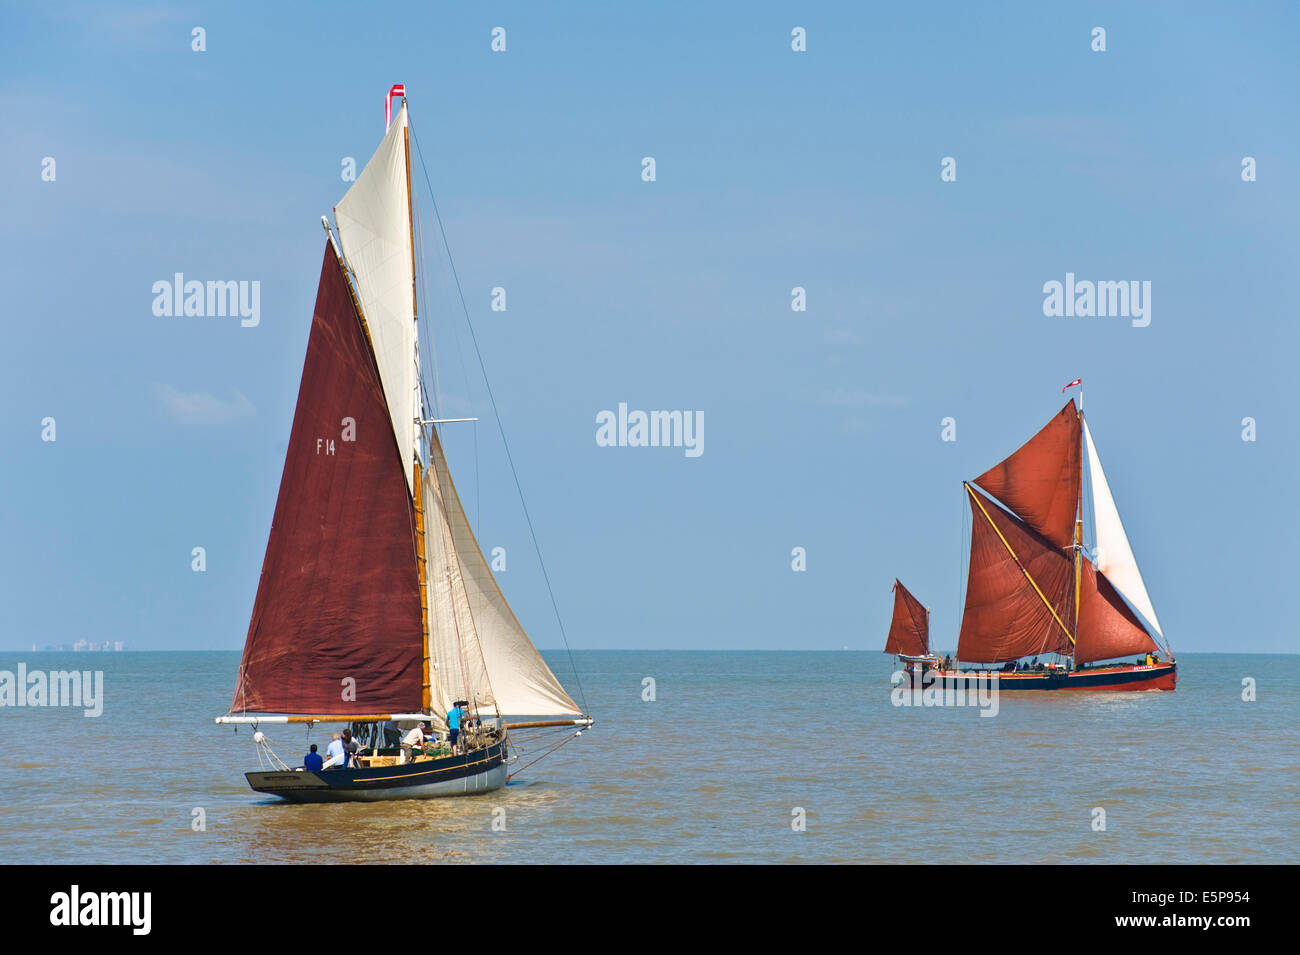 Vintage oyster smack & Thanes Barge sailing in regatta during Whitstable Oyster Festival Kent England UK - Stock Image